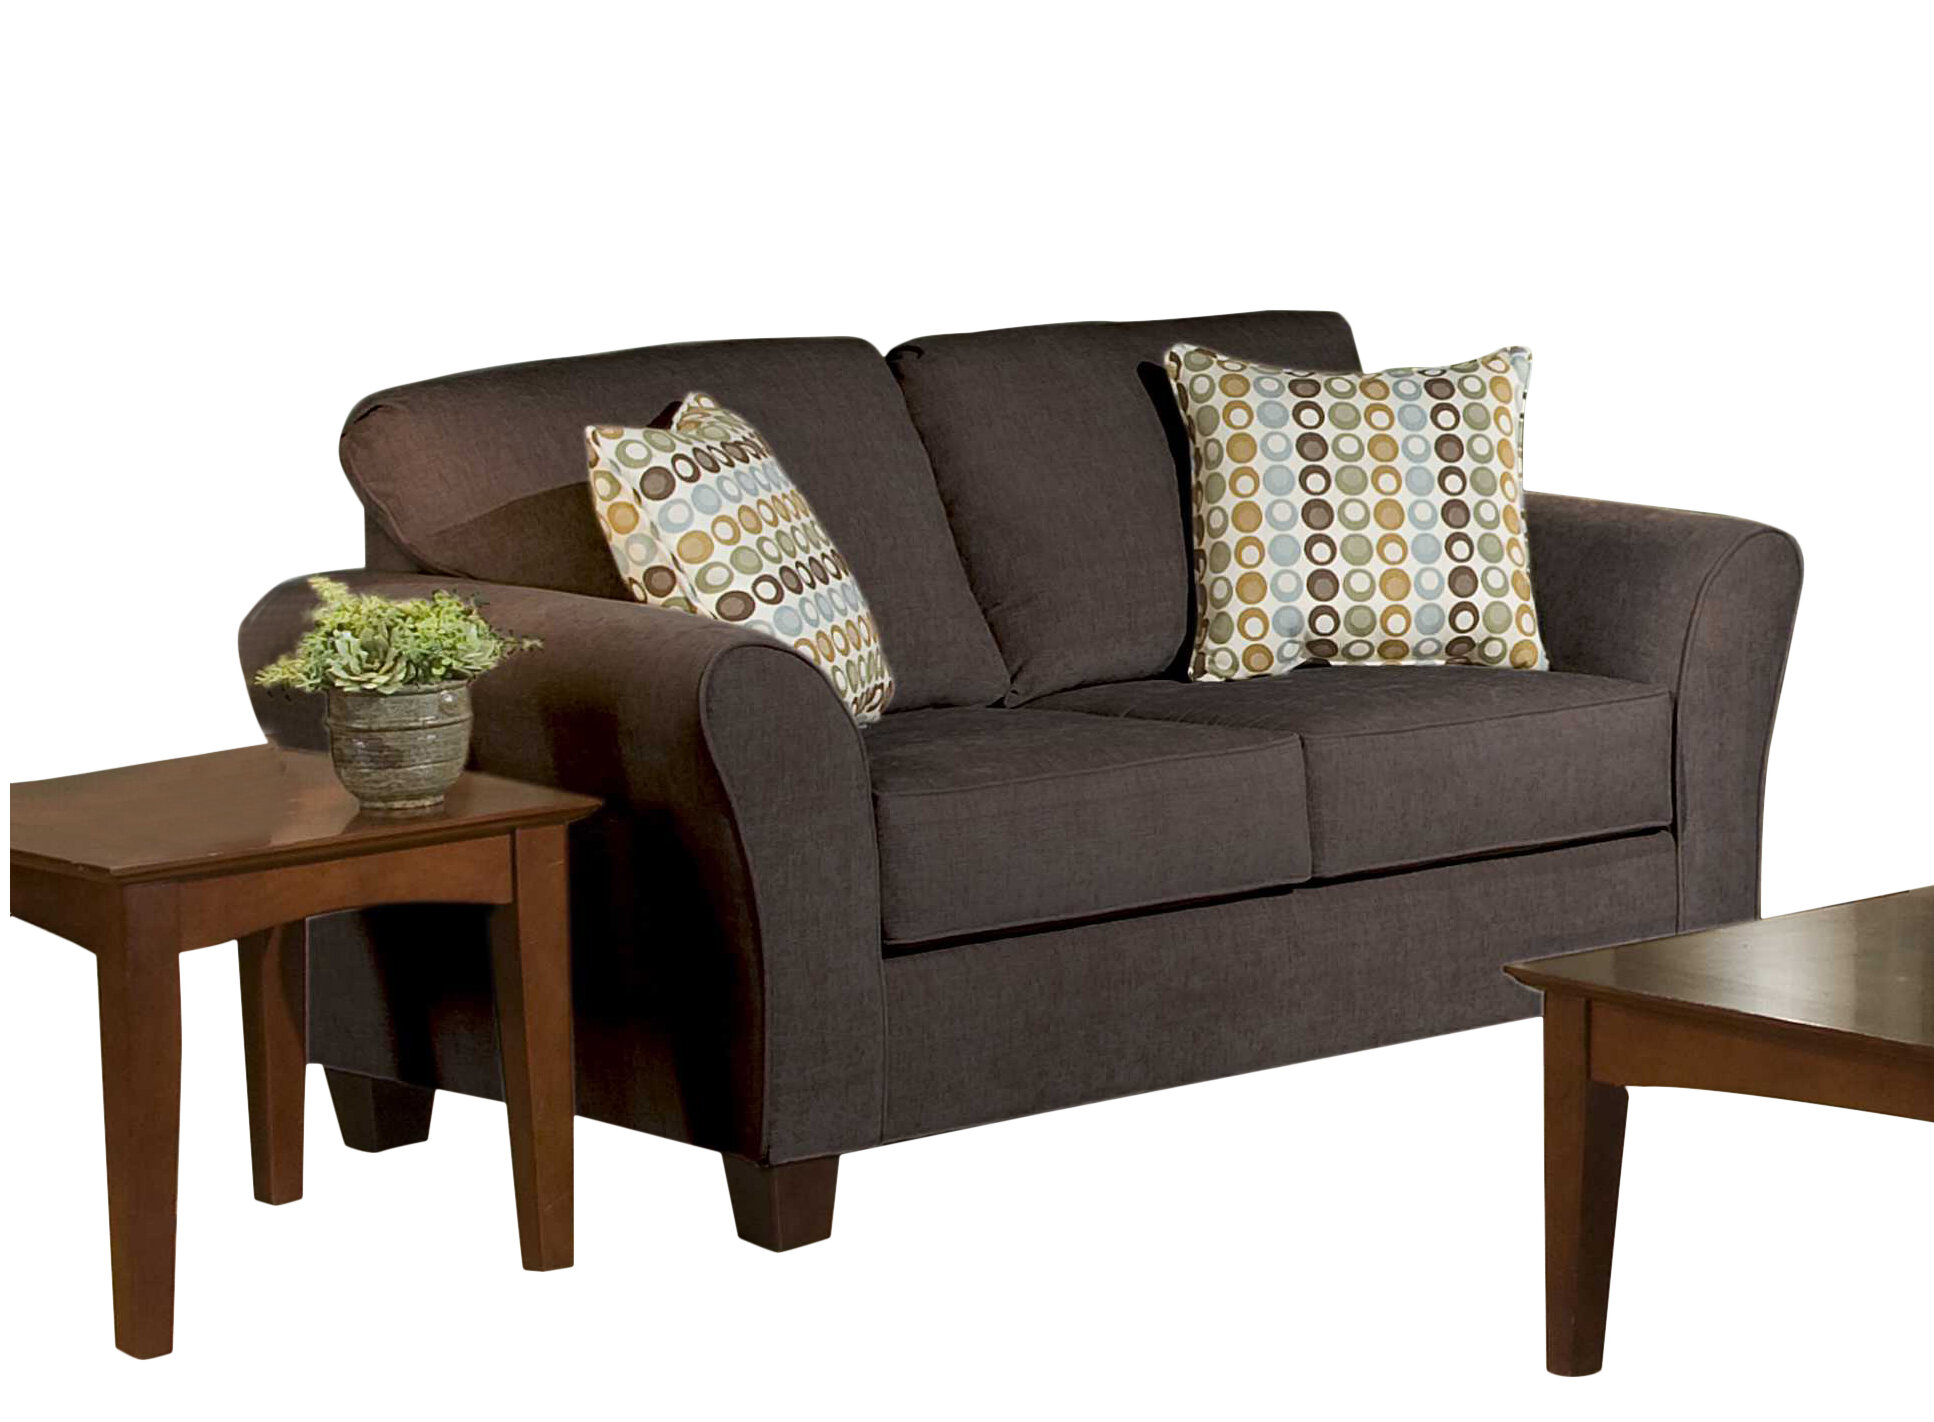 Charmant Three Posts Serta Upholstery Franklin Loveseat U0026 Reviews | Wayfair